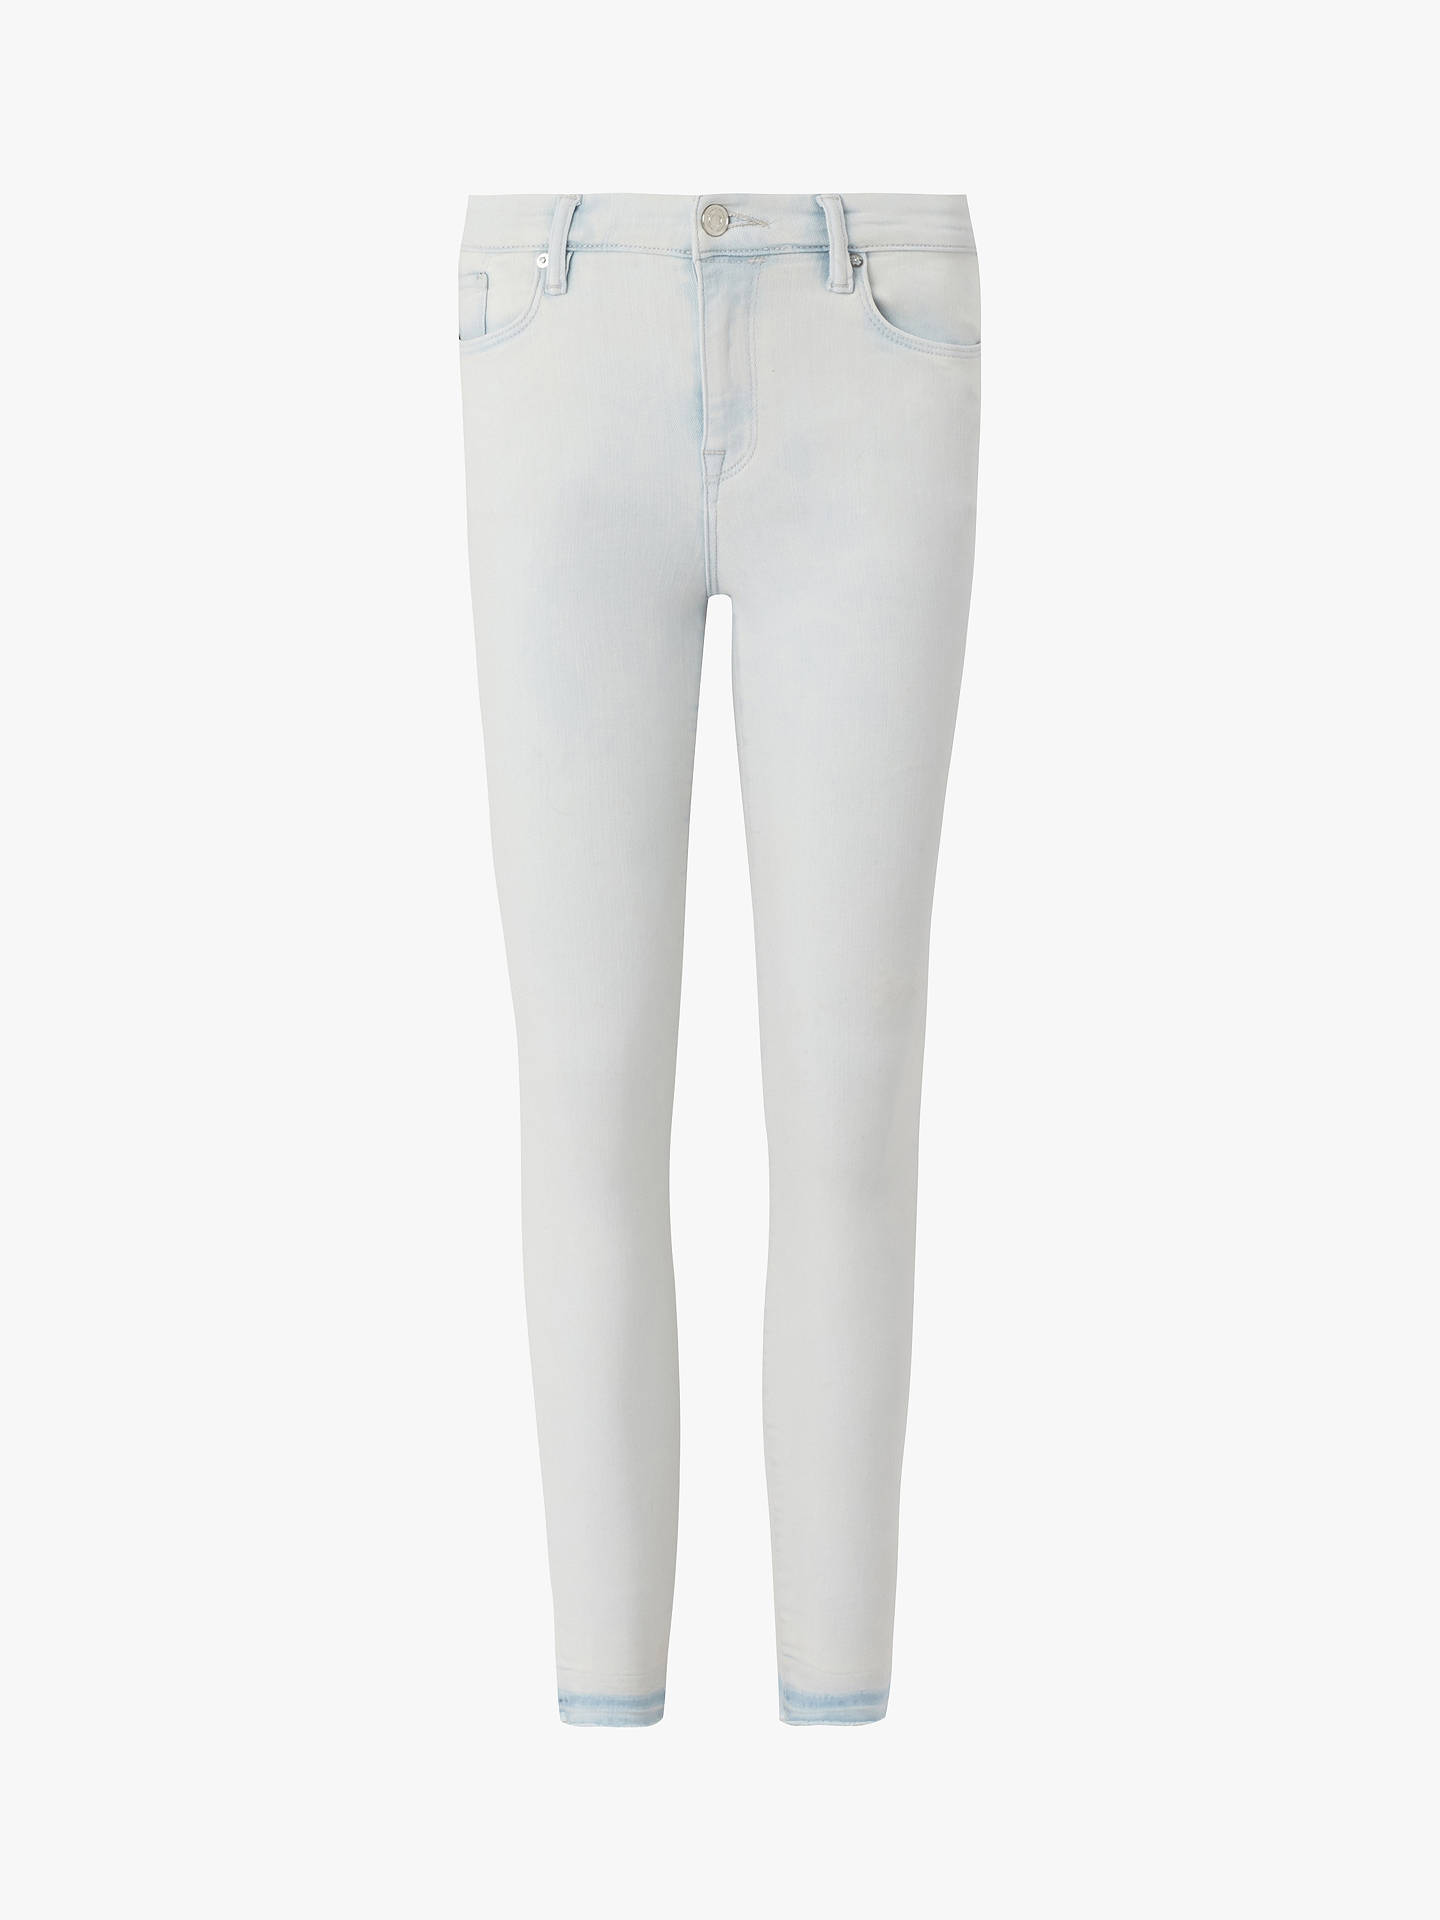 Buy AllSaints Grace Cropped Skinny Jeans, Bleach Indigo Blue, 29 Online at johnlewis.com